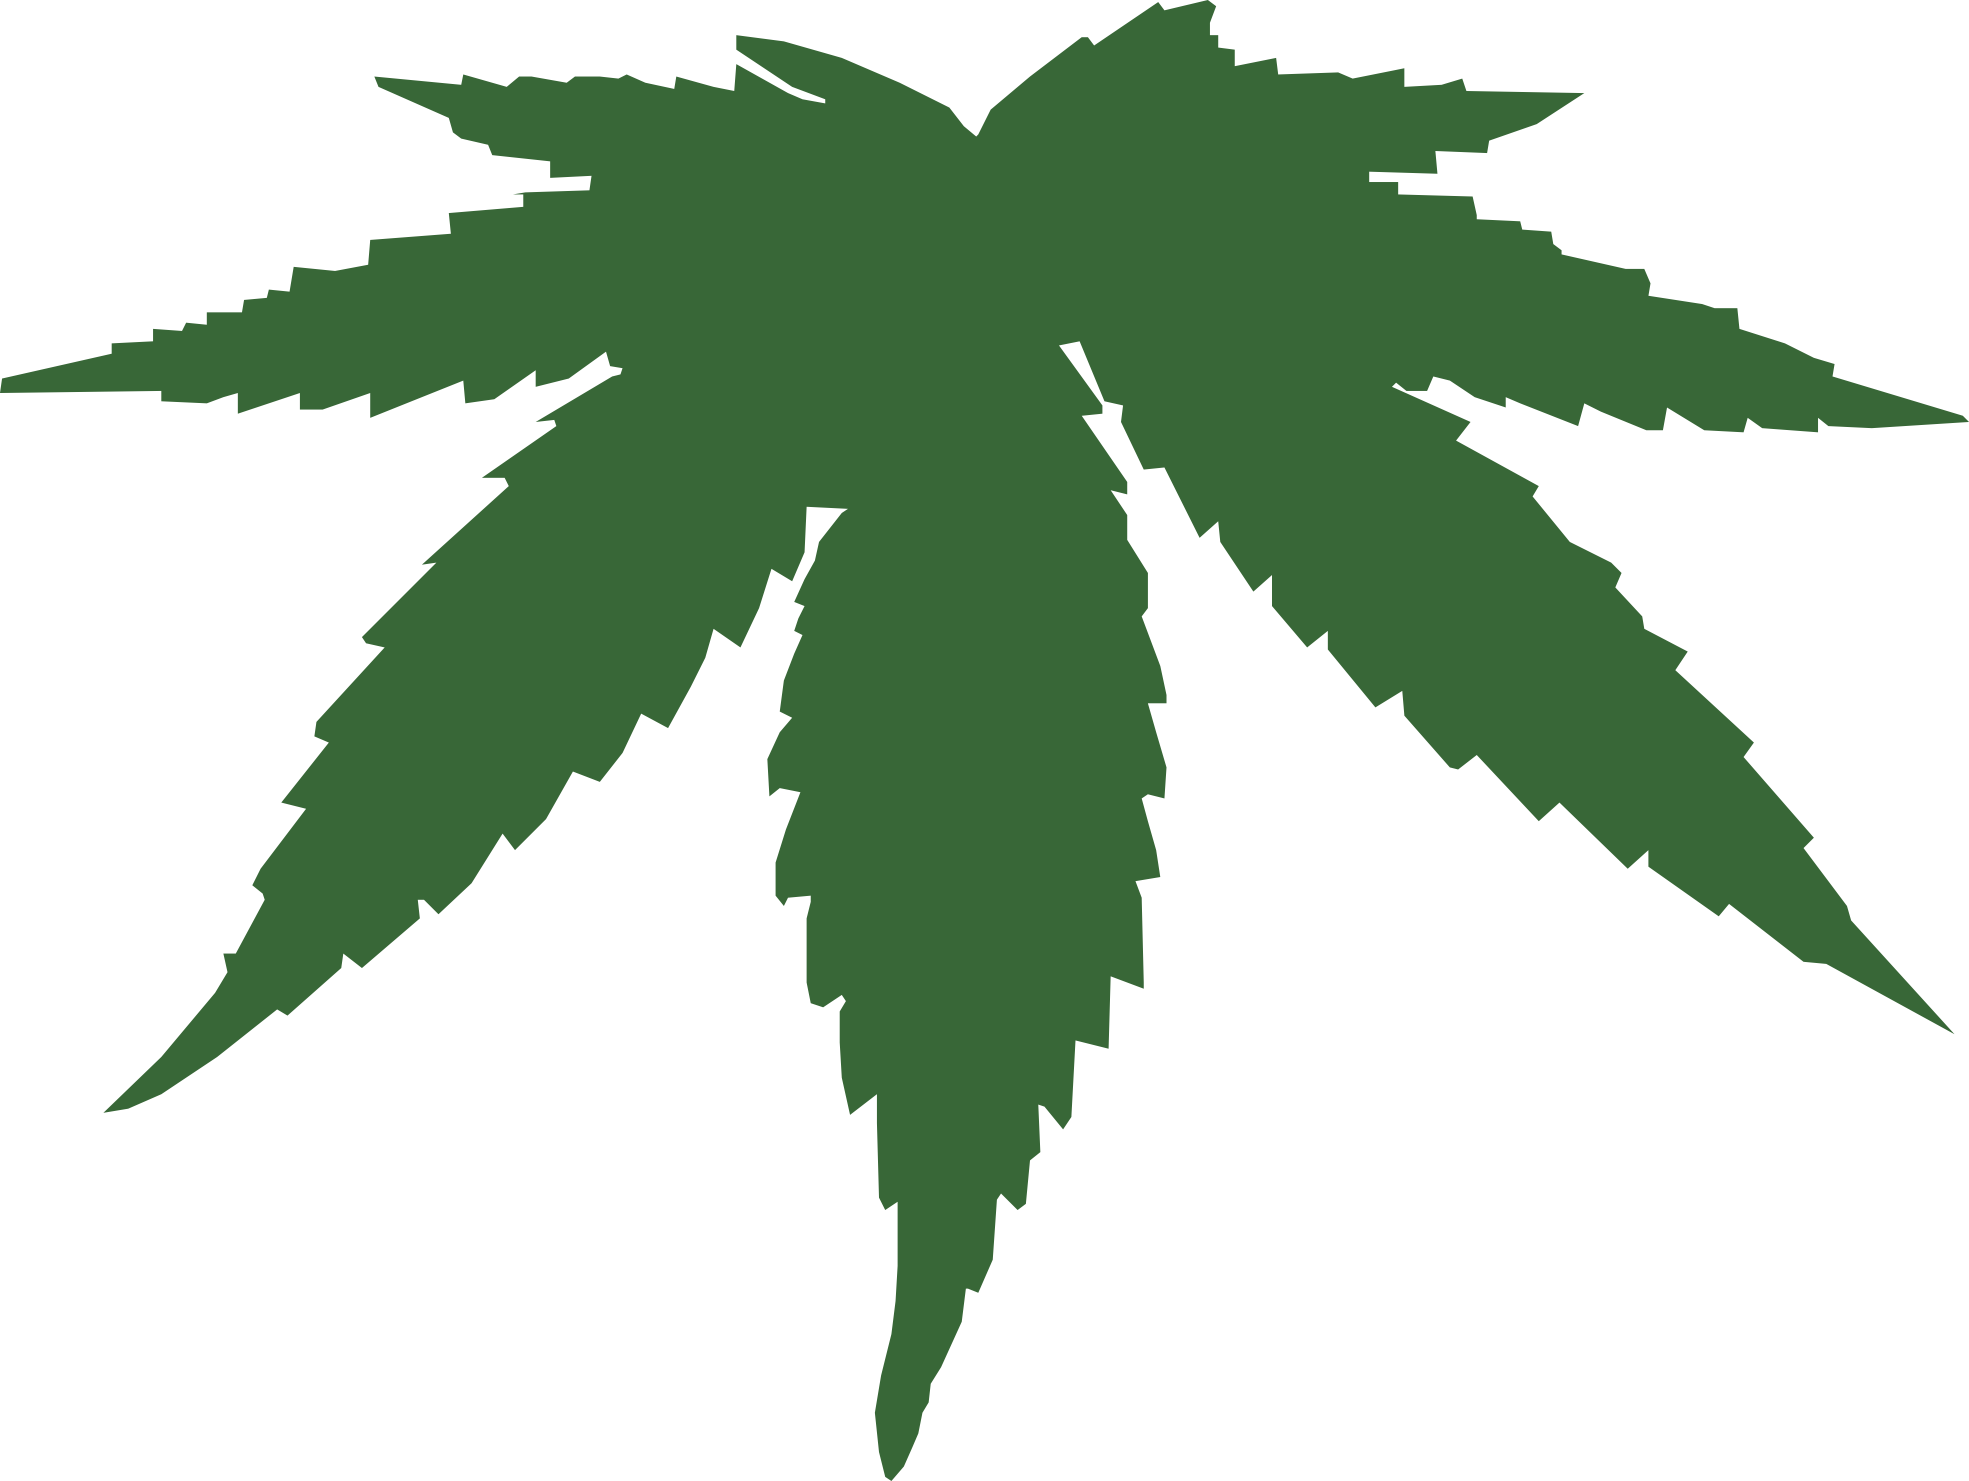 Weed clipart black freeuse stock Black Weed Leaf Clip Art | Clipart Panda - Free Clipart Images freeuse stock